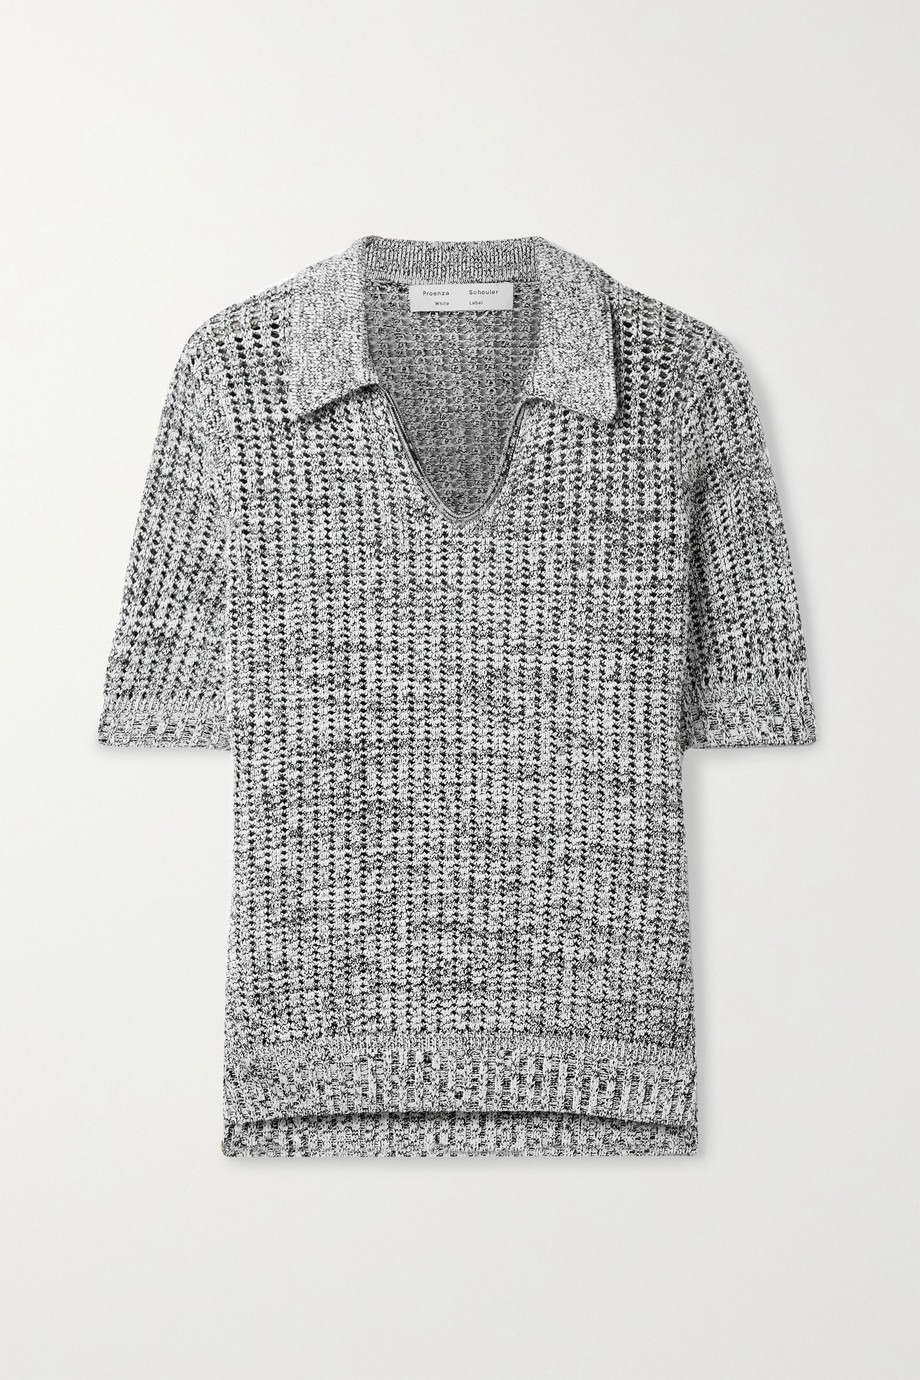 PROENZA SCHOULER WHITE LABEL Open-knit silk and cotton-blend polo top